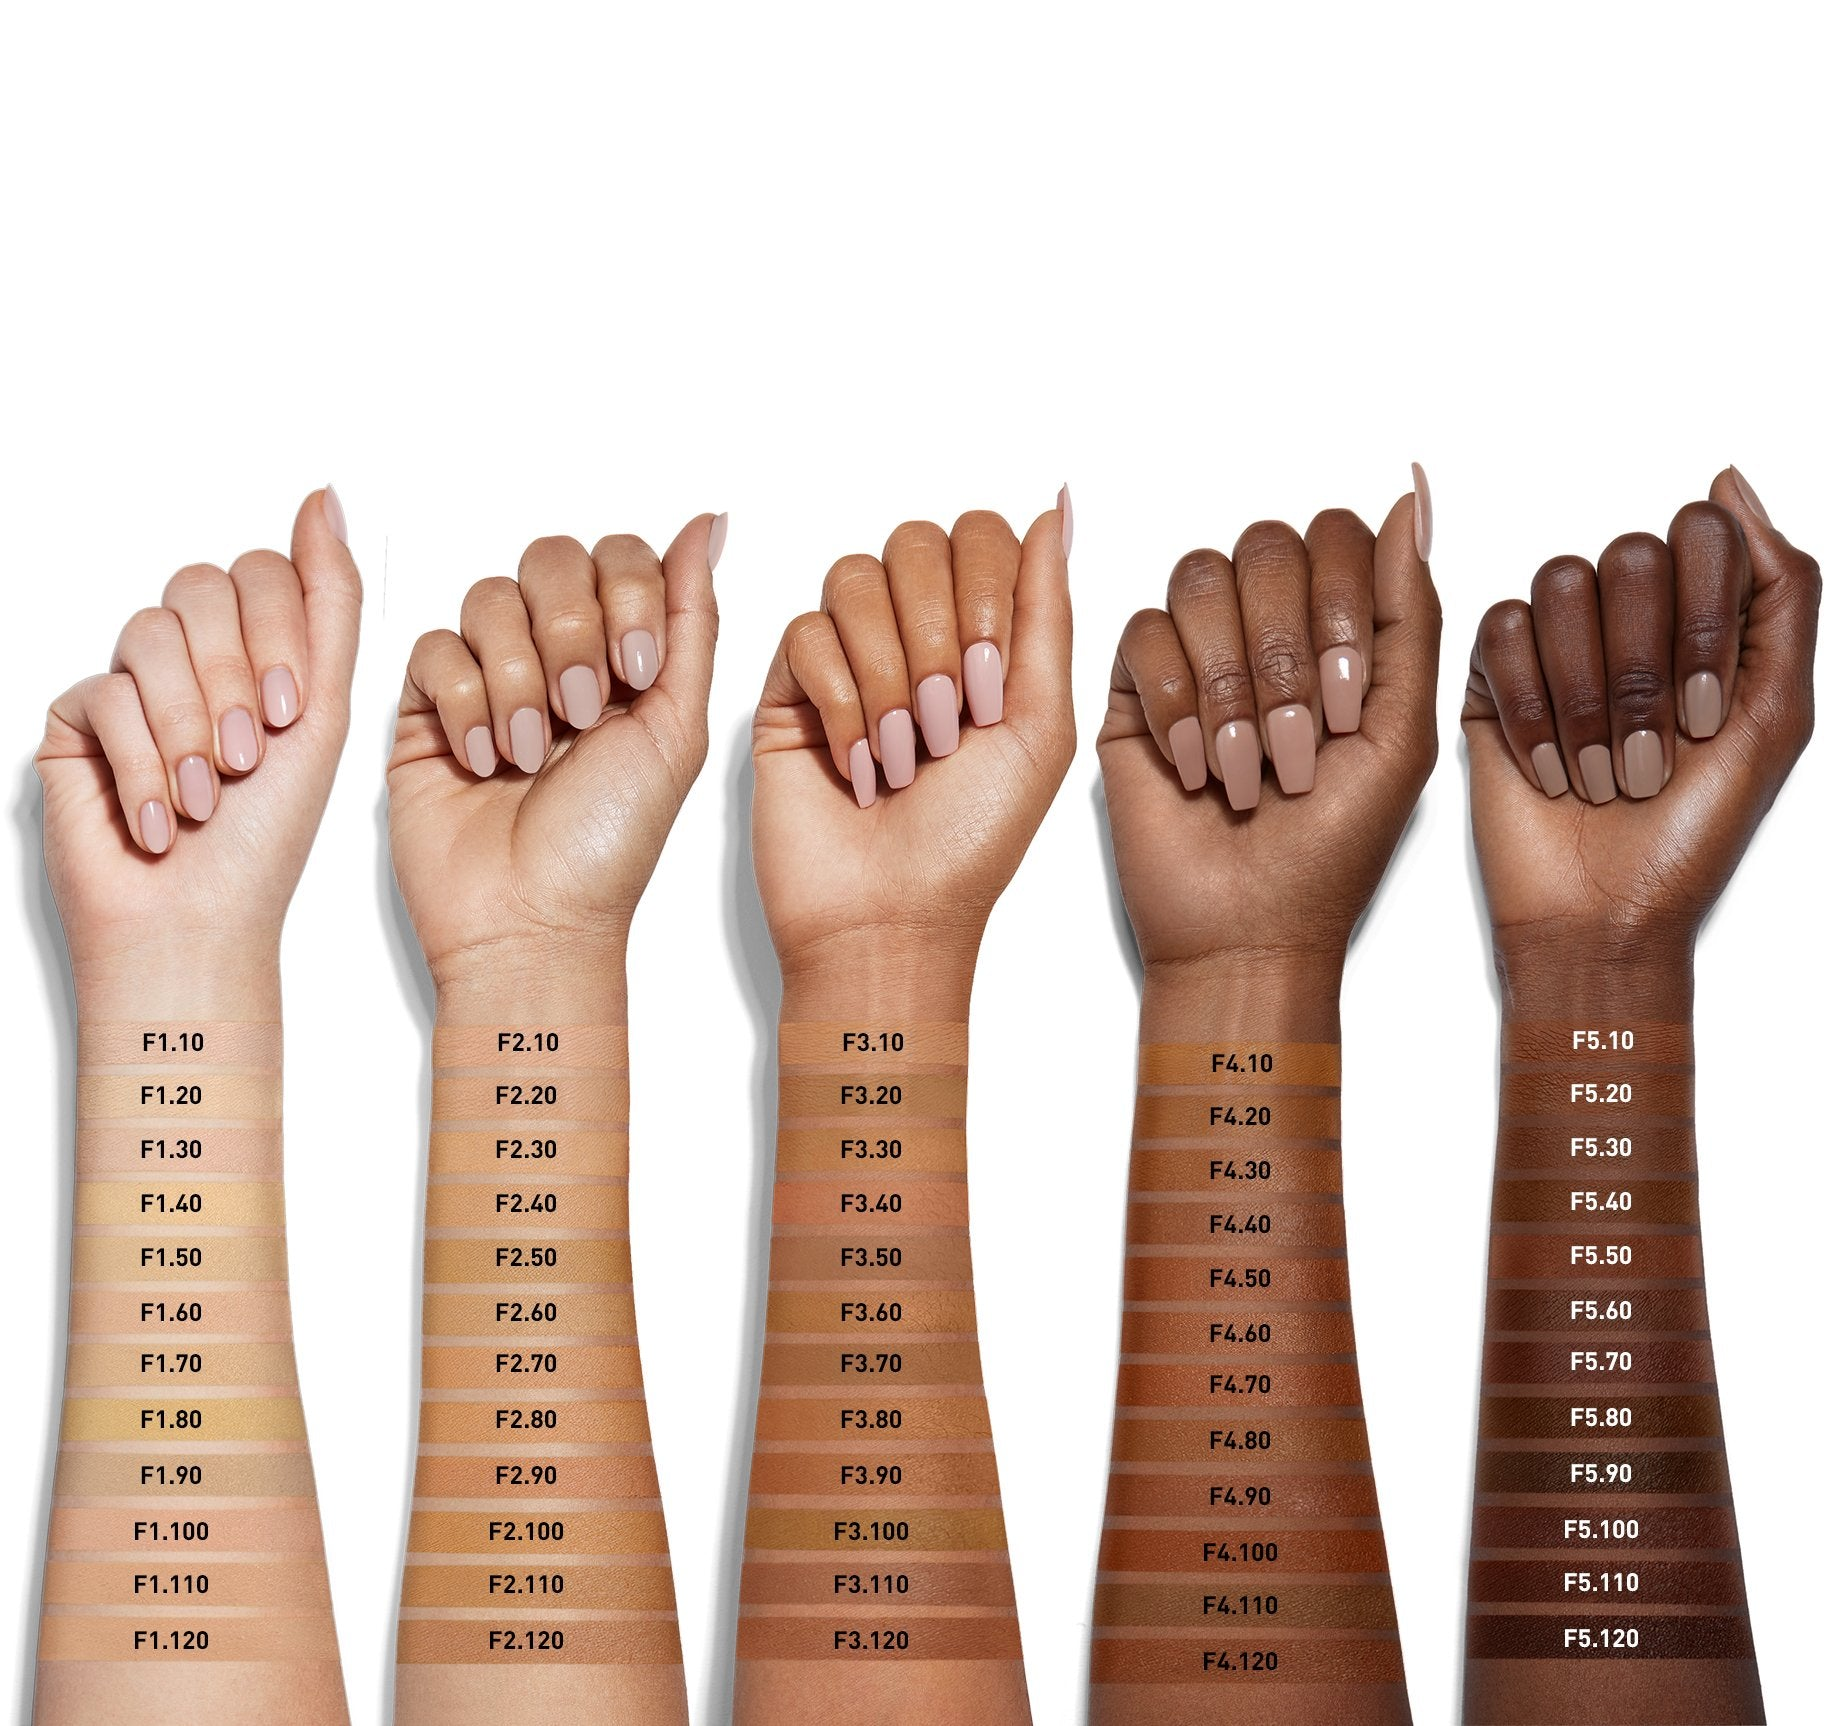 FLUIDITY FULL-COVERAGE FOUNDATION - F1.10 ARM SWATCHES, view larger image